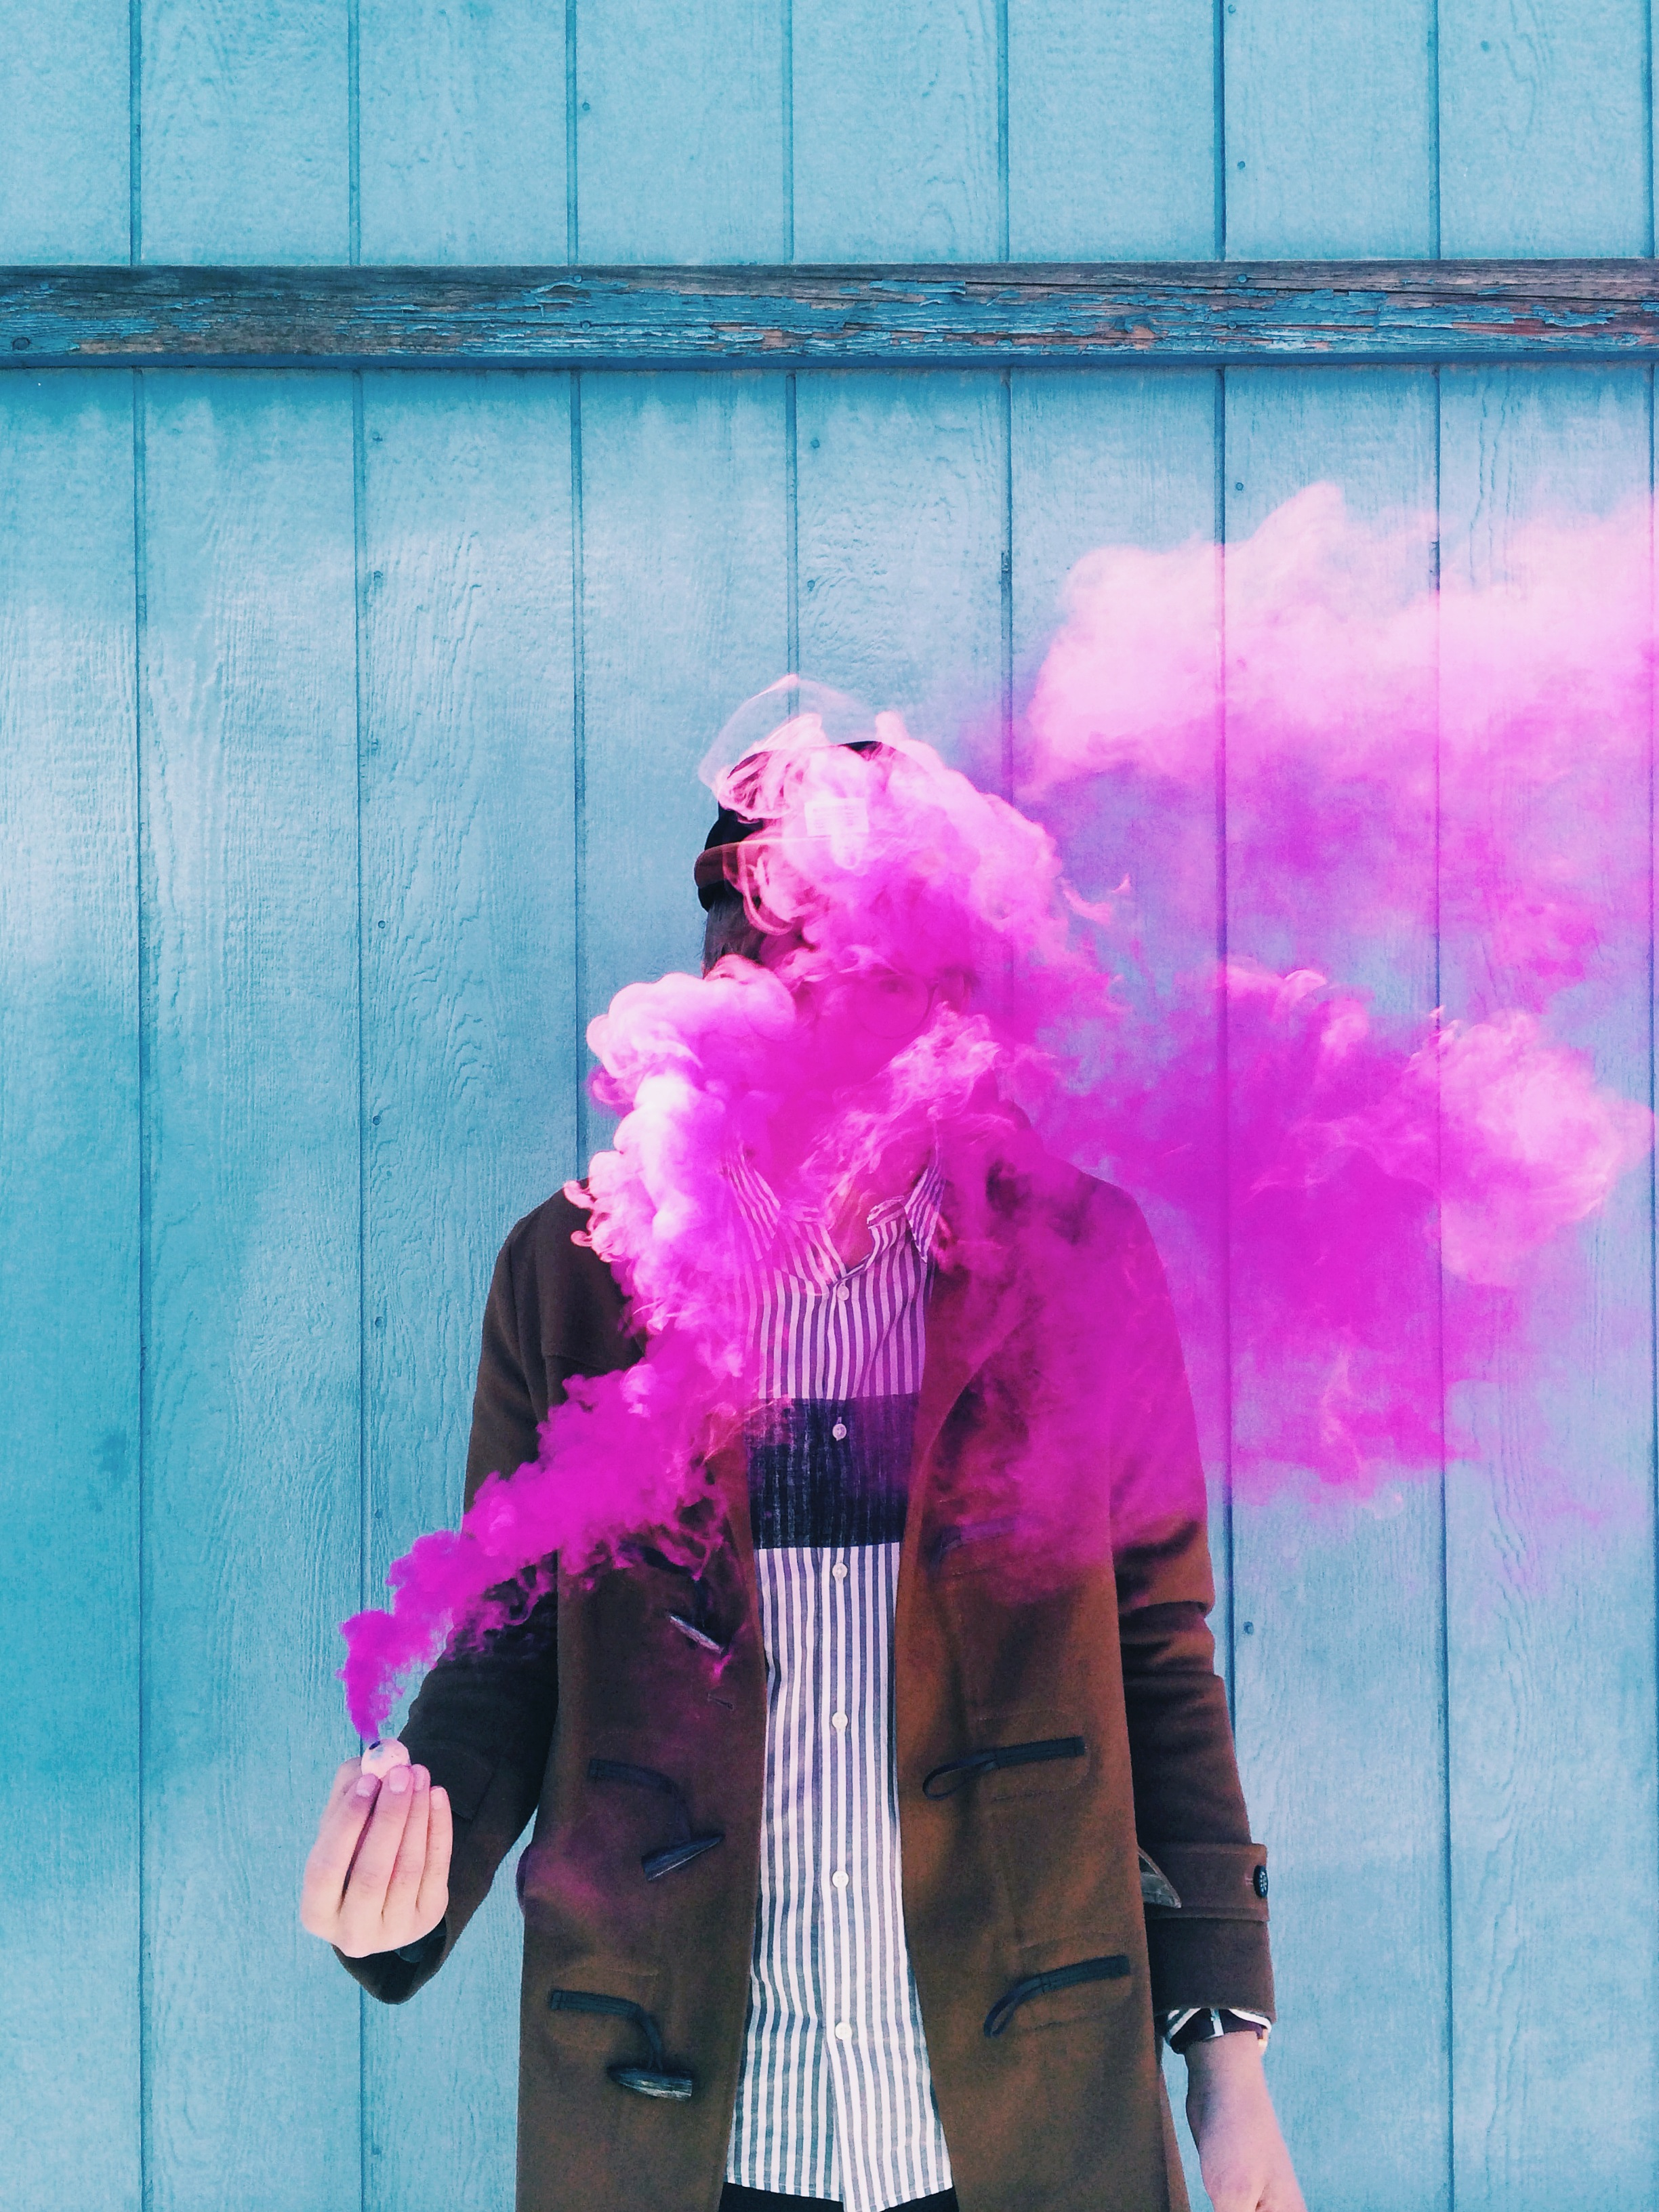 Fun with smoke bombs. Featured in Better Than Pizza, The Visual Cooperative, Colorado Instagram, and the Curated VSCO Grid.